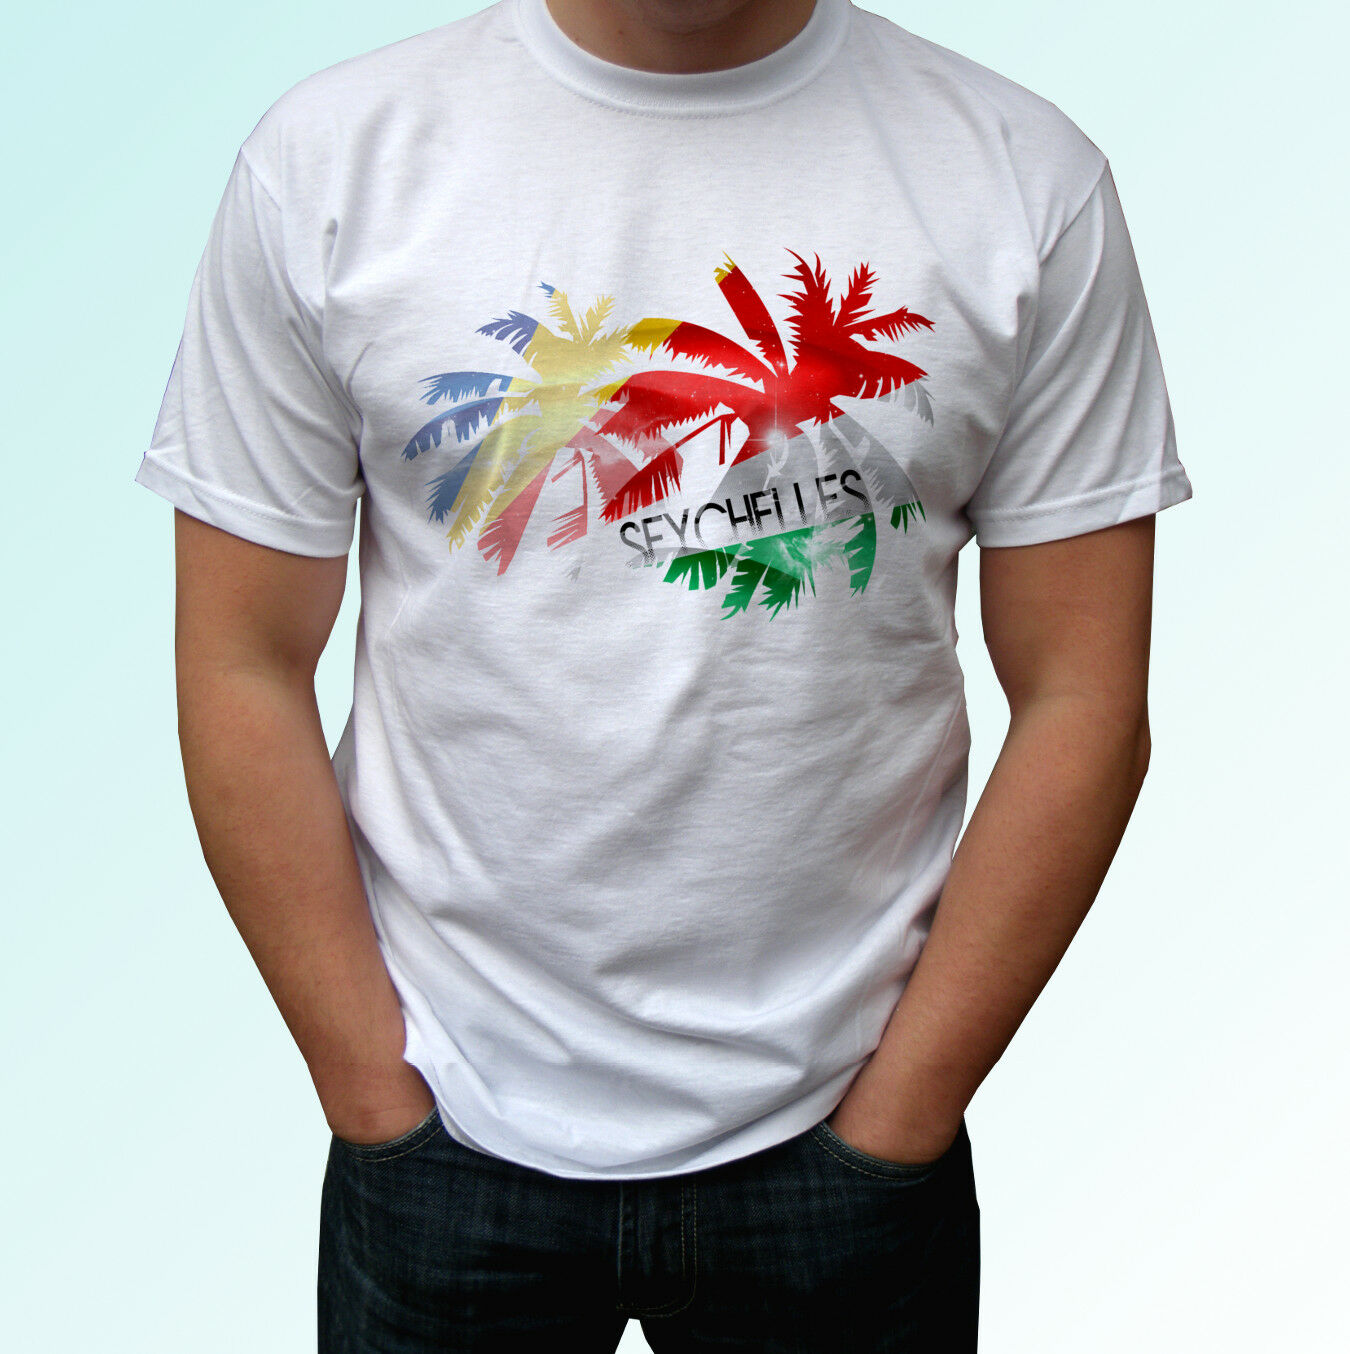 Seychelles Palm Flag - White T Shirt Holiday Top Design Mens Womens Kids Baby